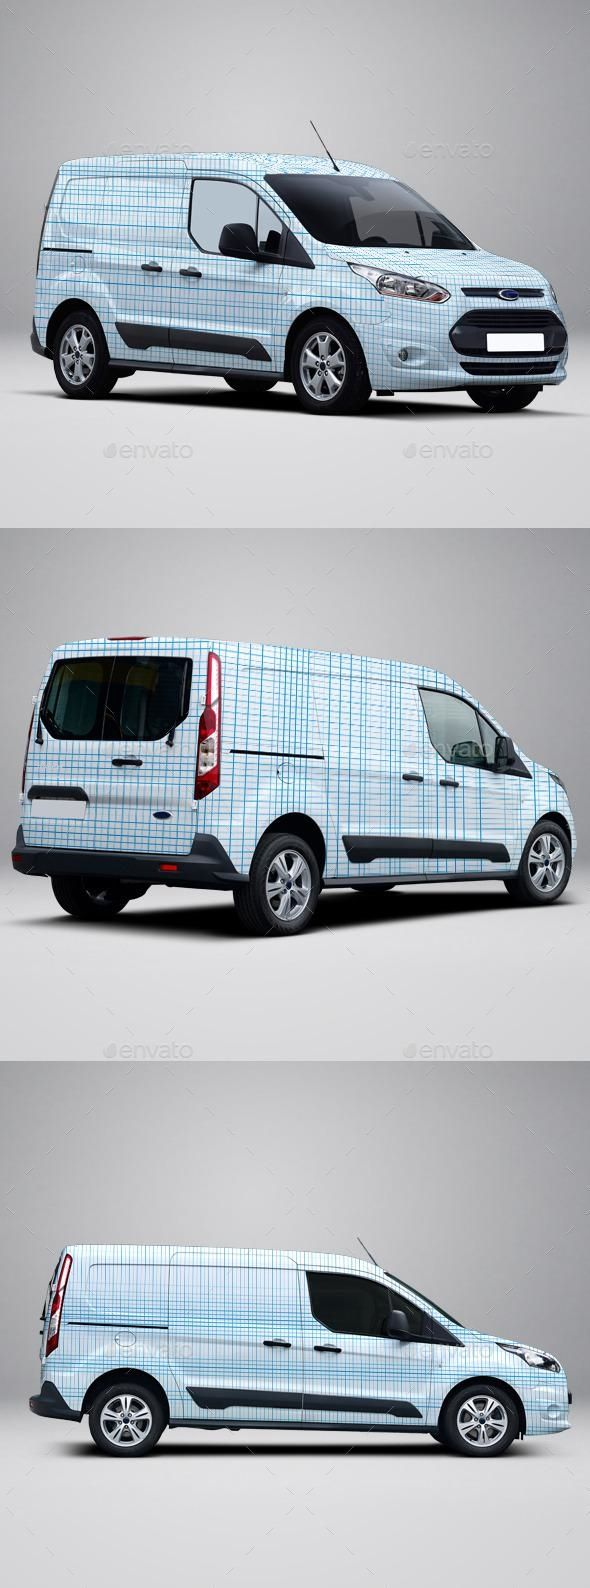 2014 Ford Transit Connect Wrap Mockup Ford Transit Mockup